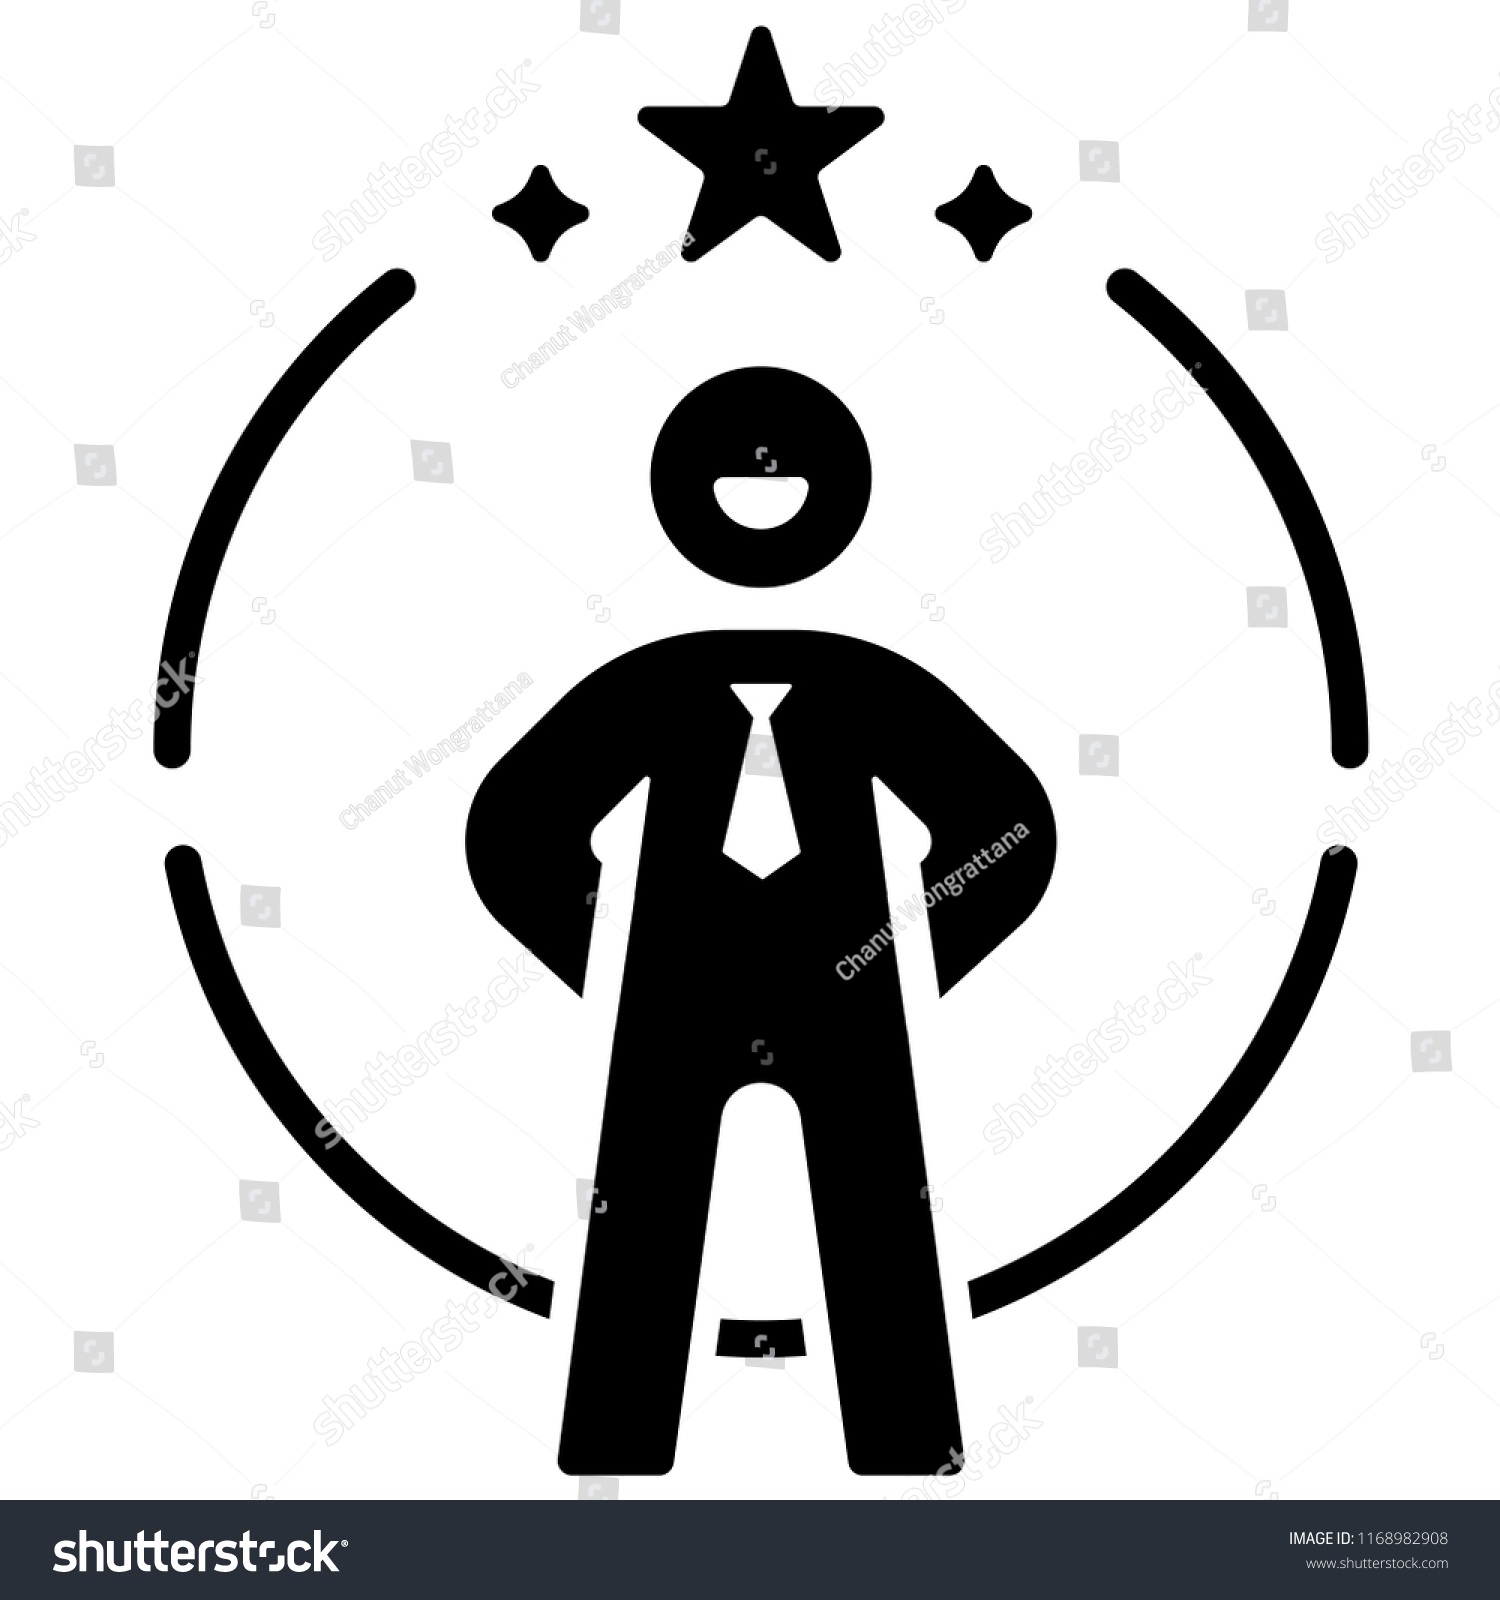 Person icon with star on circle line vector illustration in solid color design